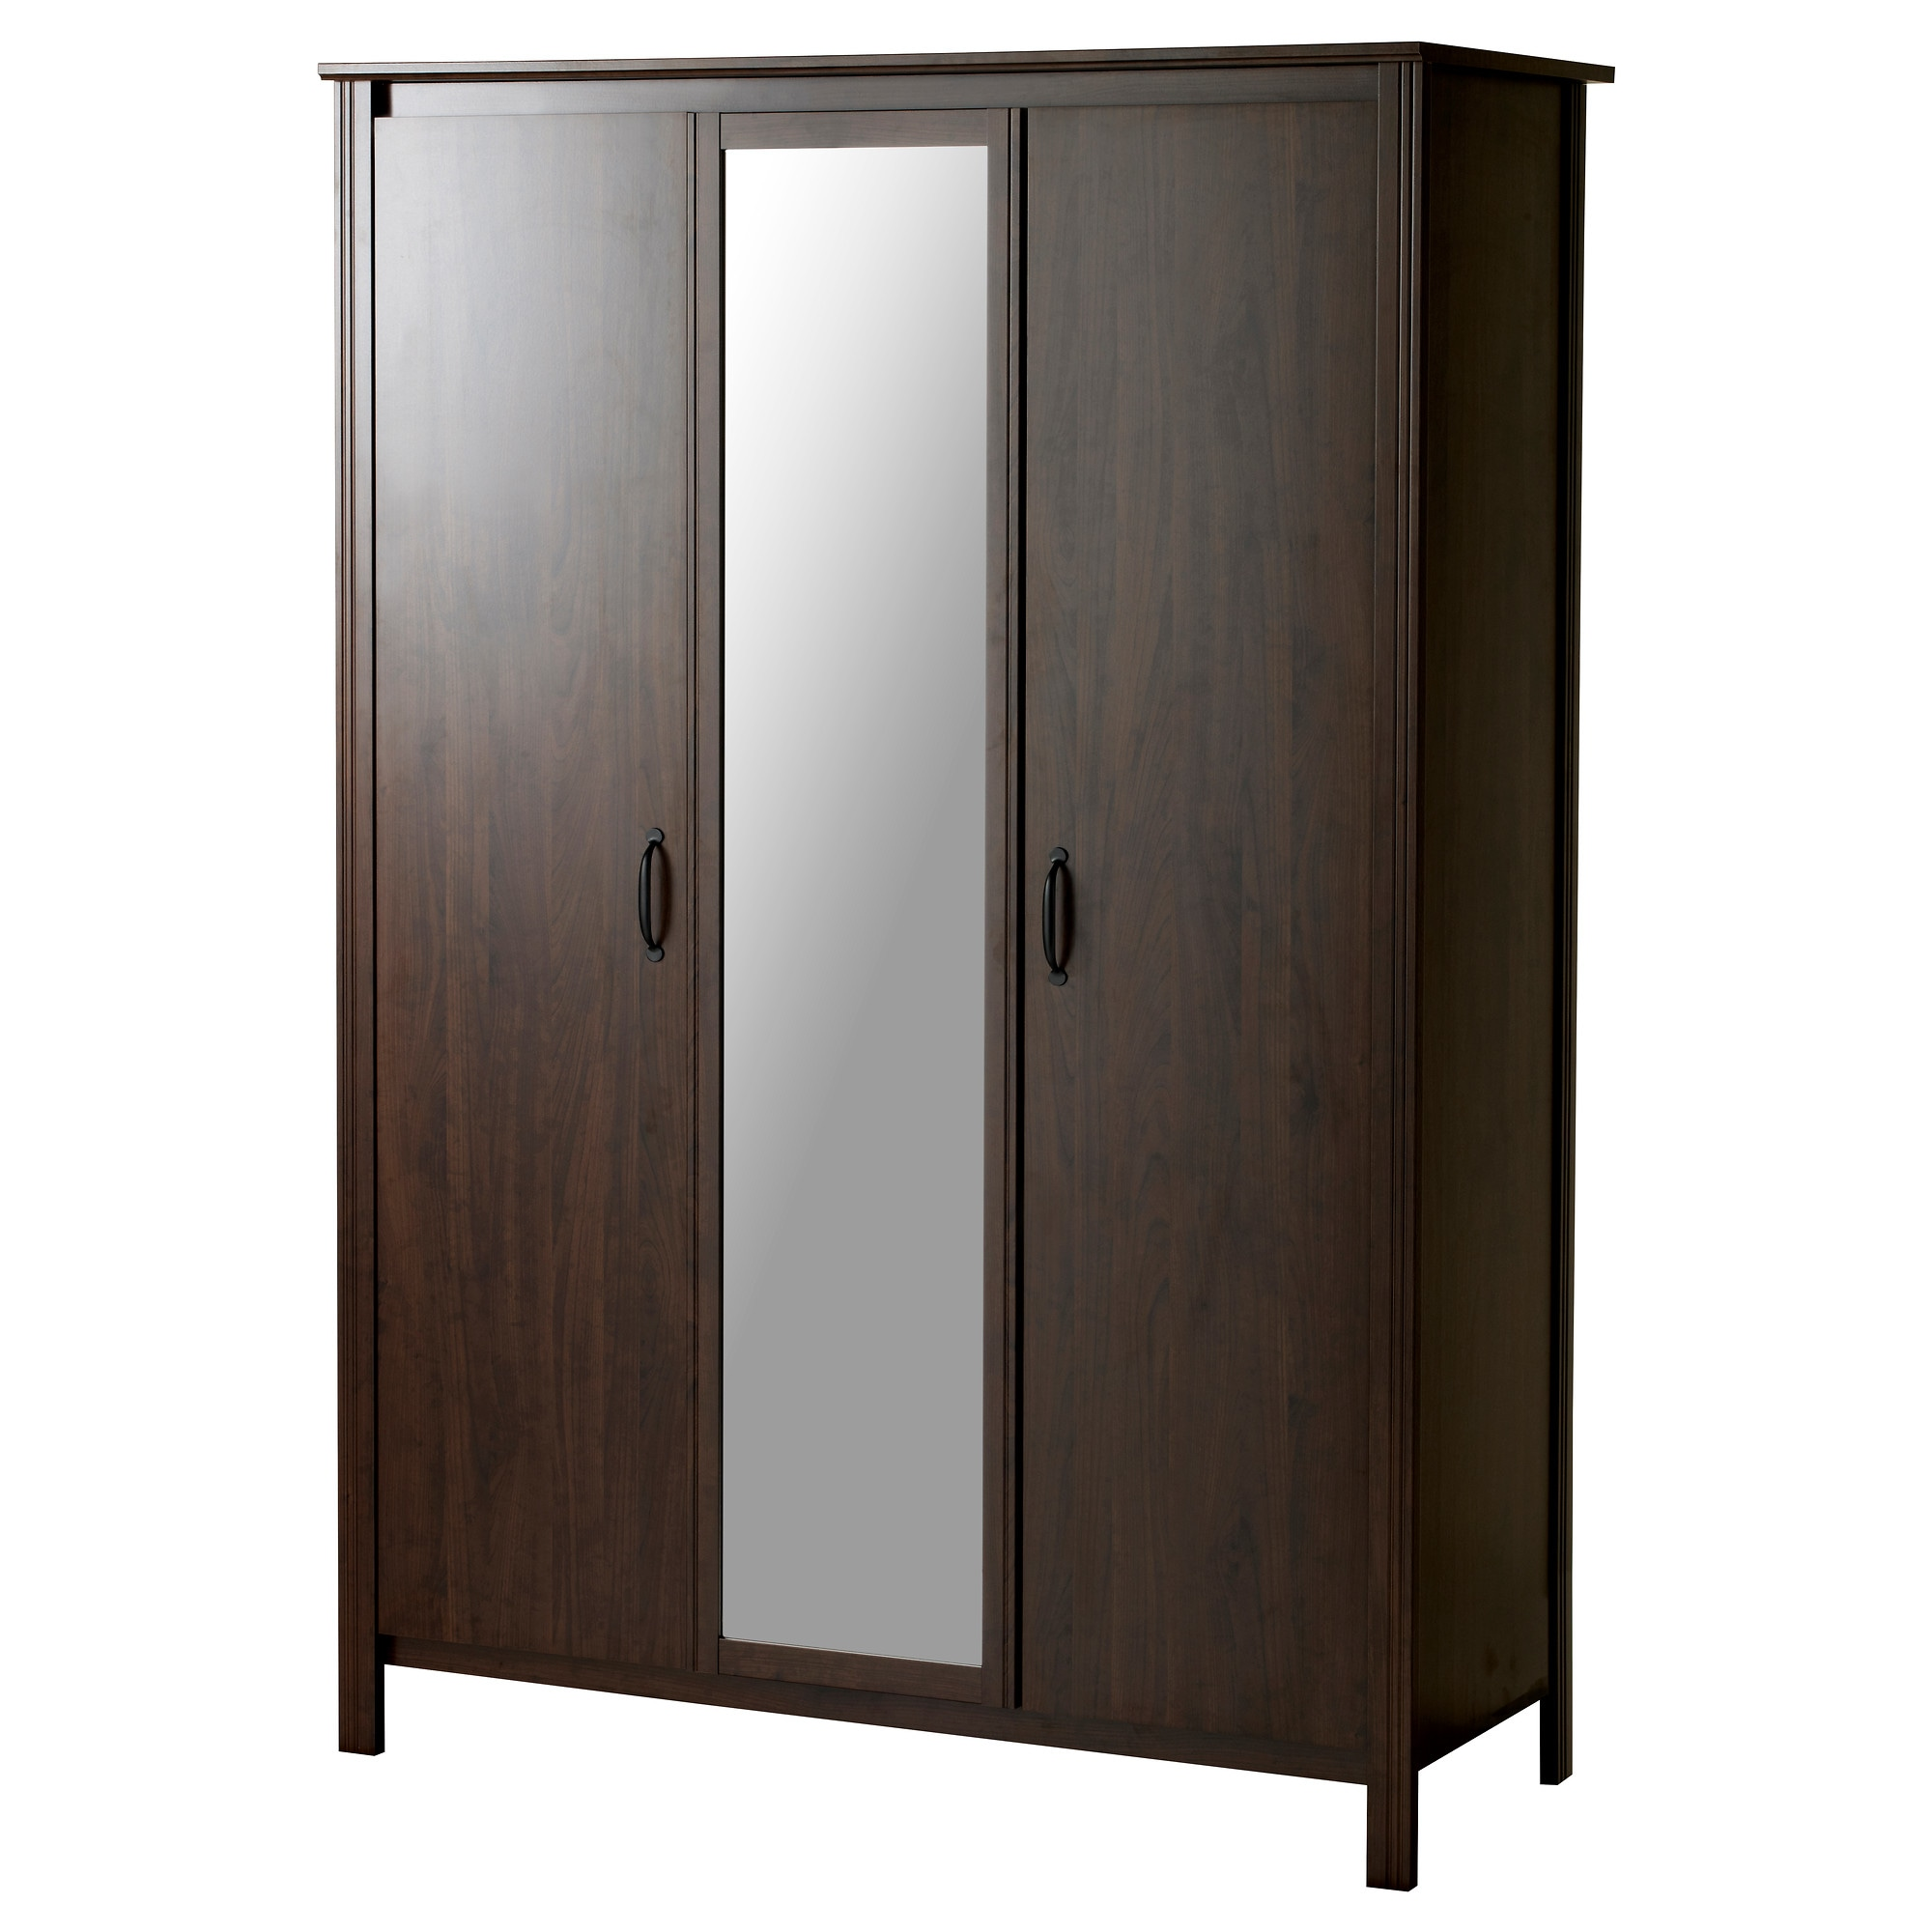 BRUSALI wardrobe with 3 doors  brown Width  51 5 8   Depth. Wardrobes  Armoires   Closets   IKEA